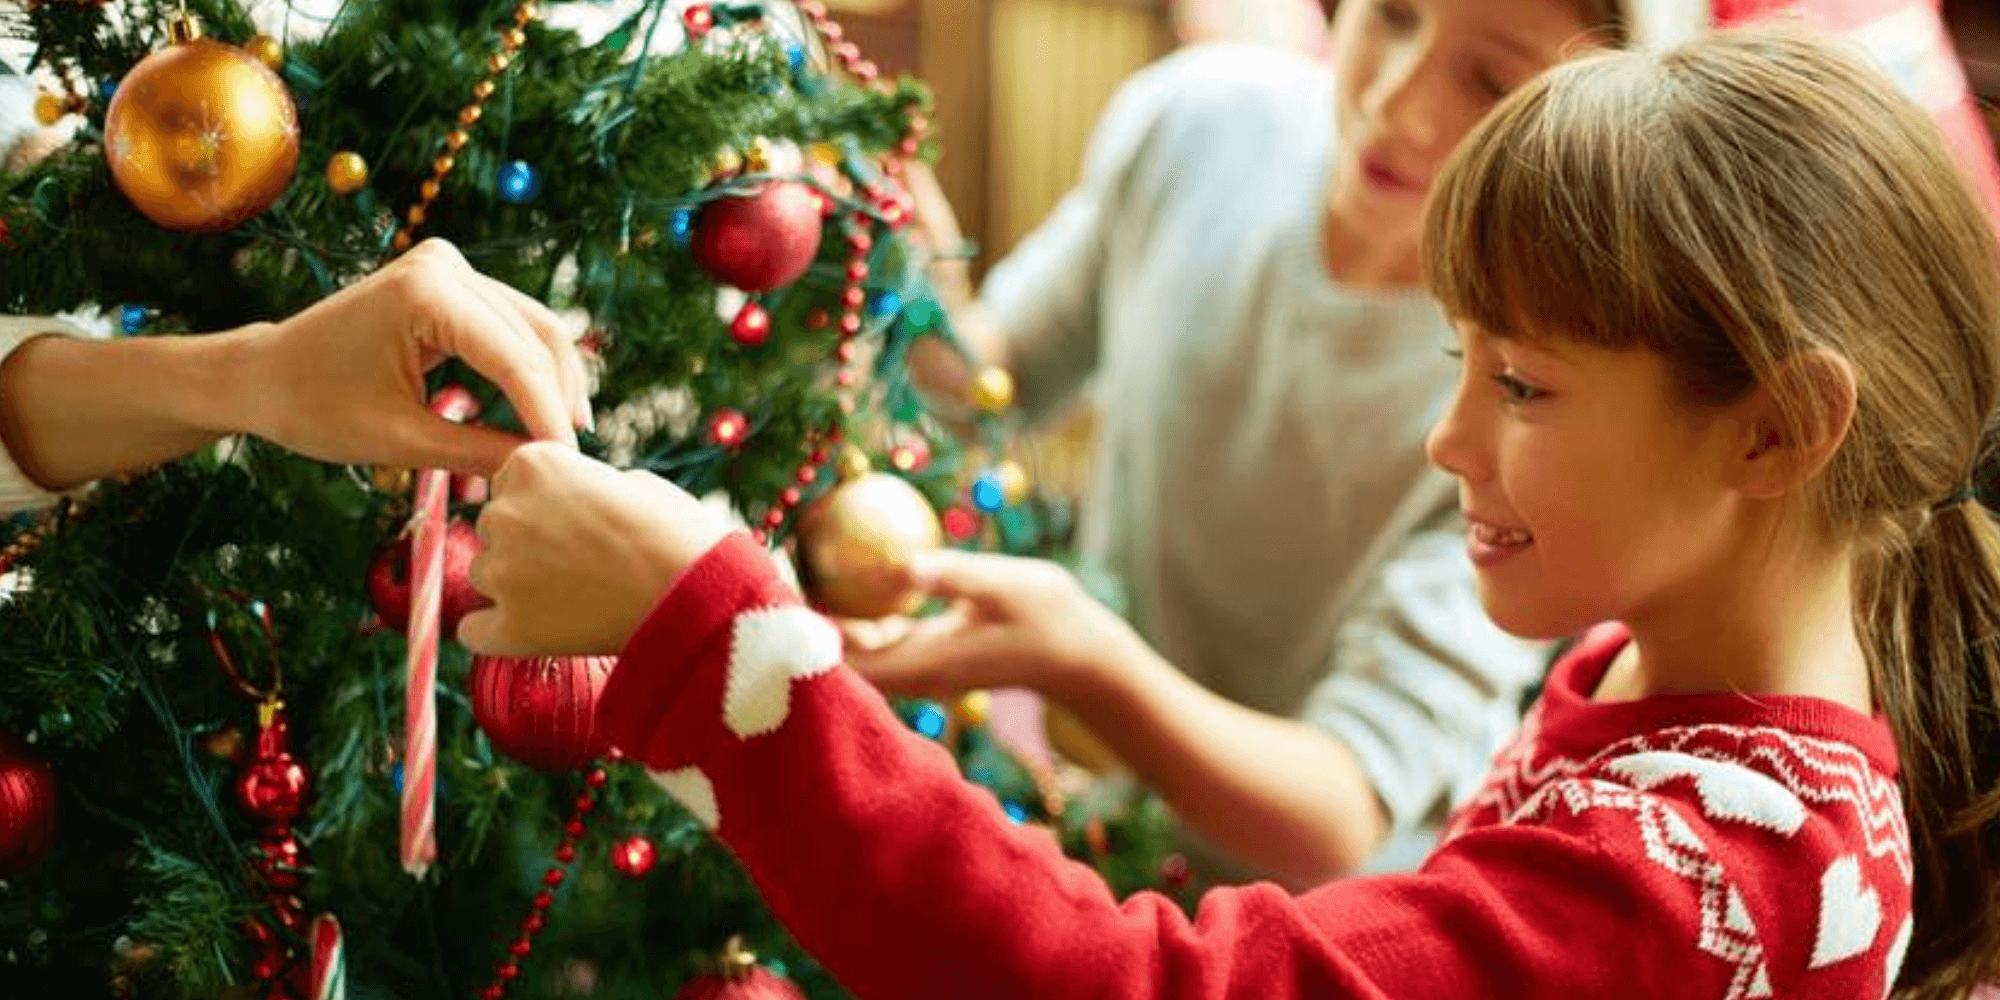 children putting decorations on the tree